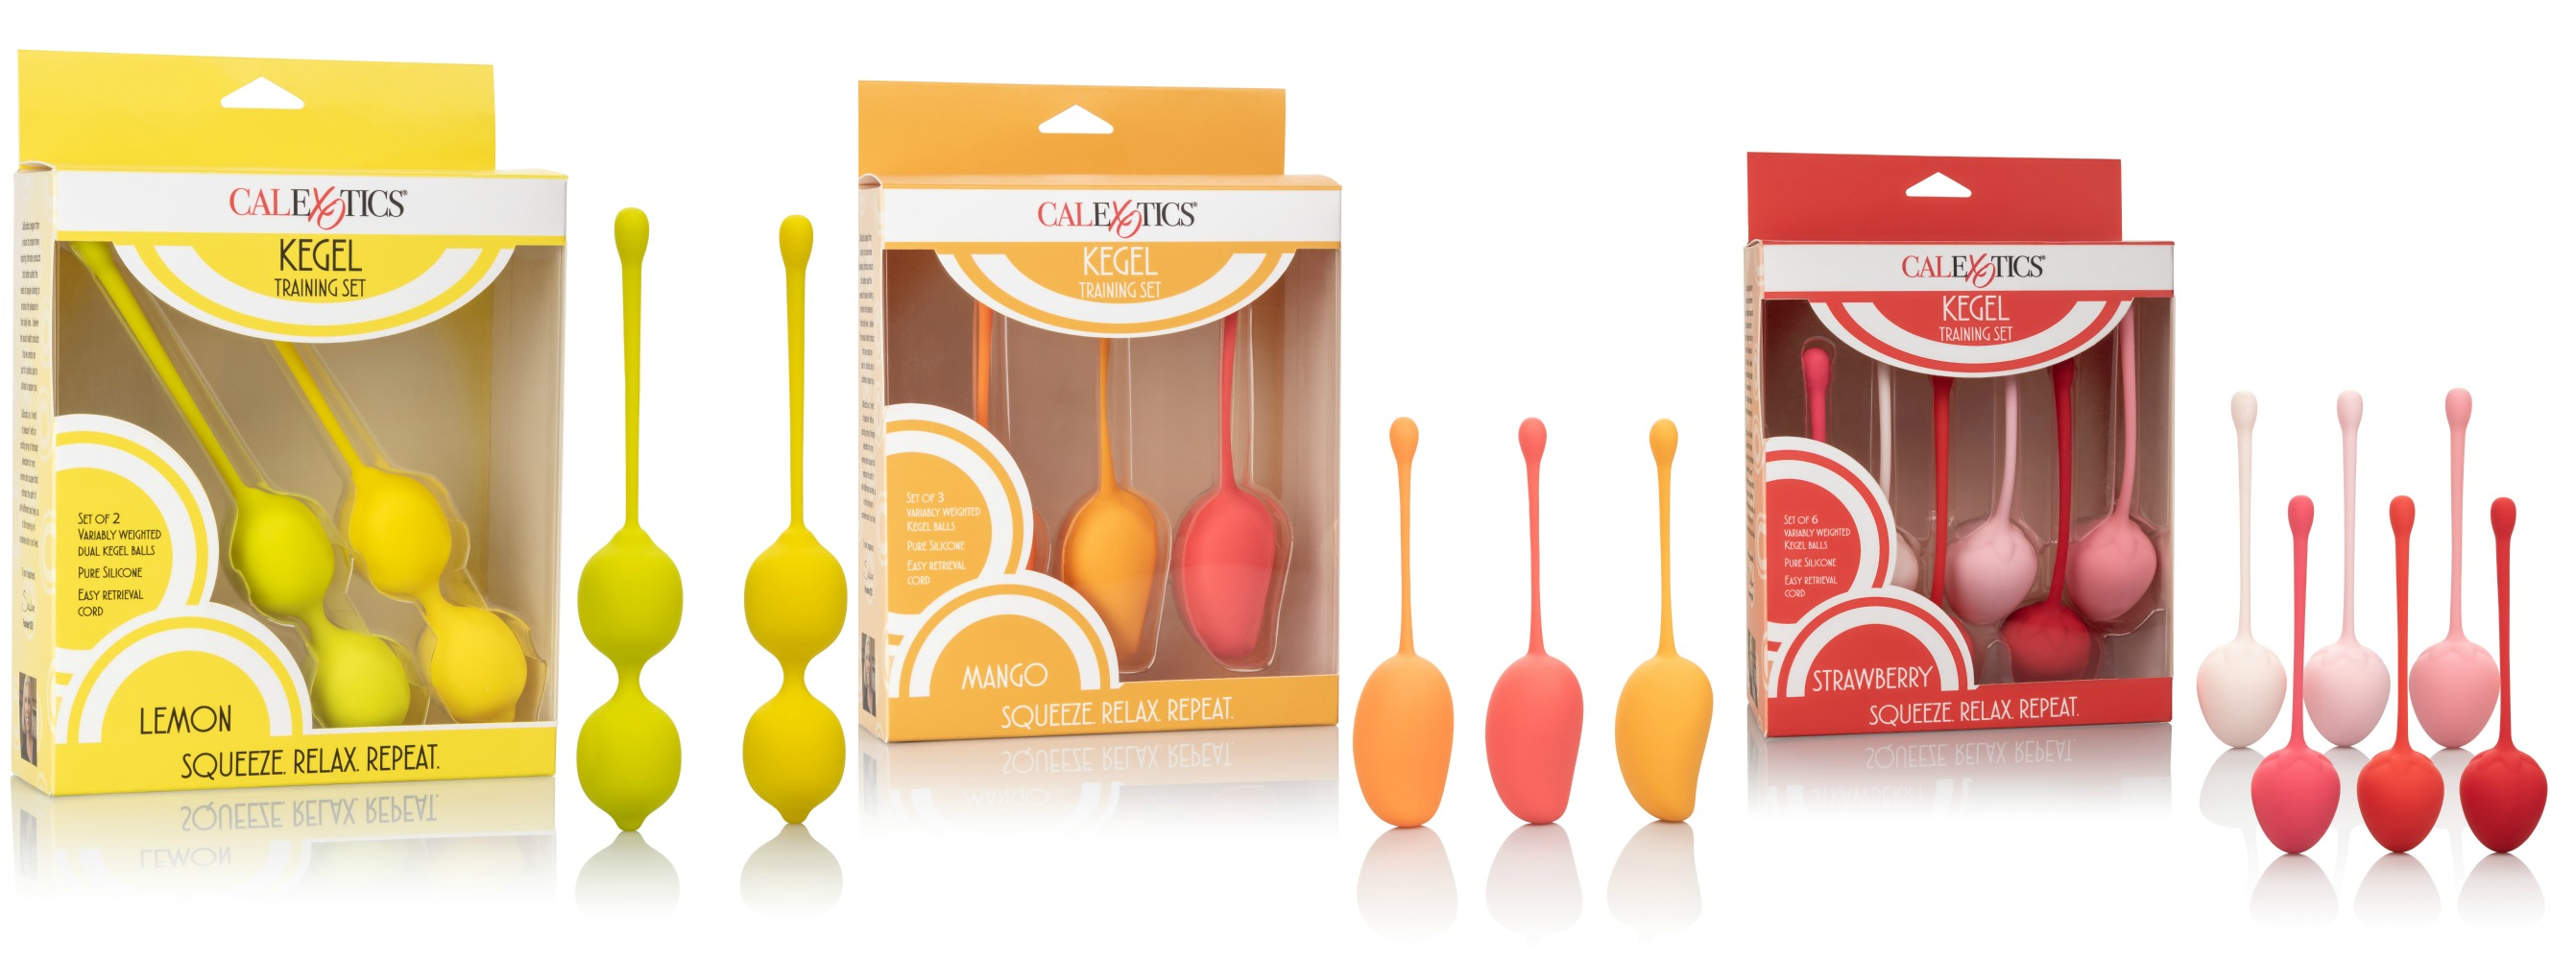 Kegel Training Sets by CalExotics